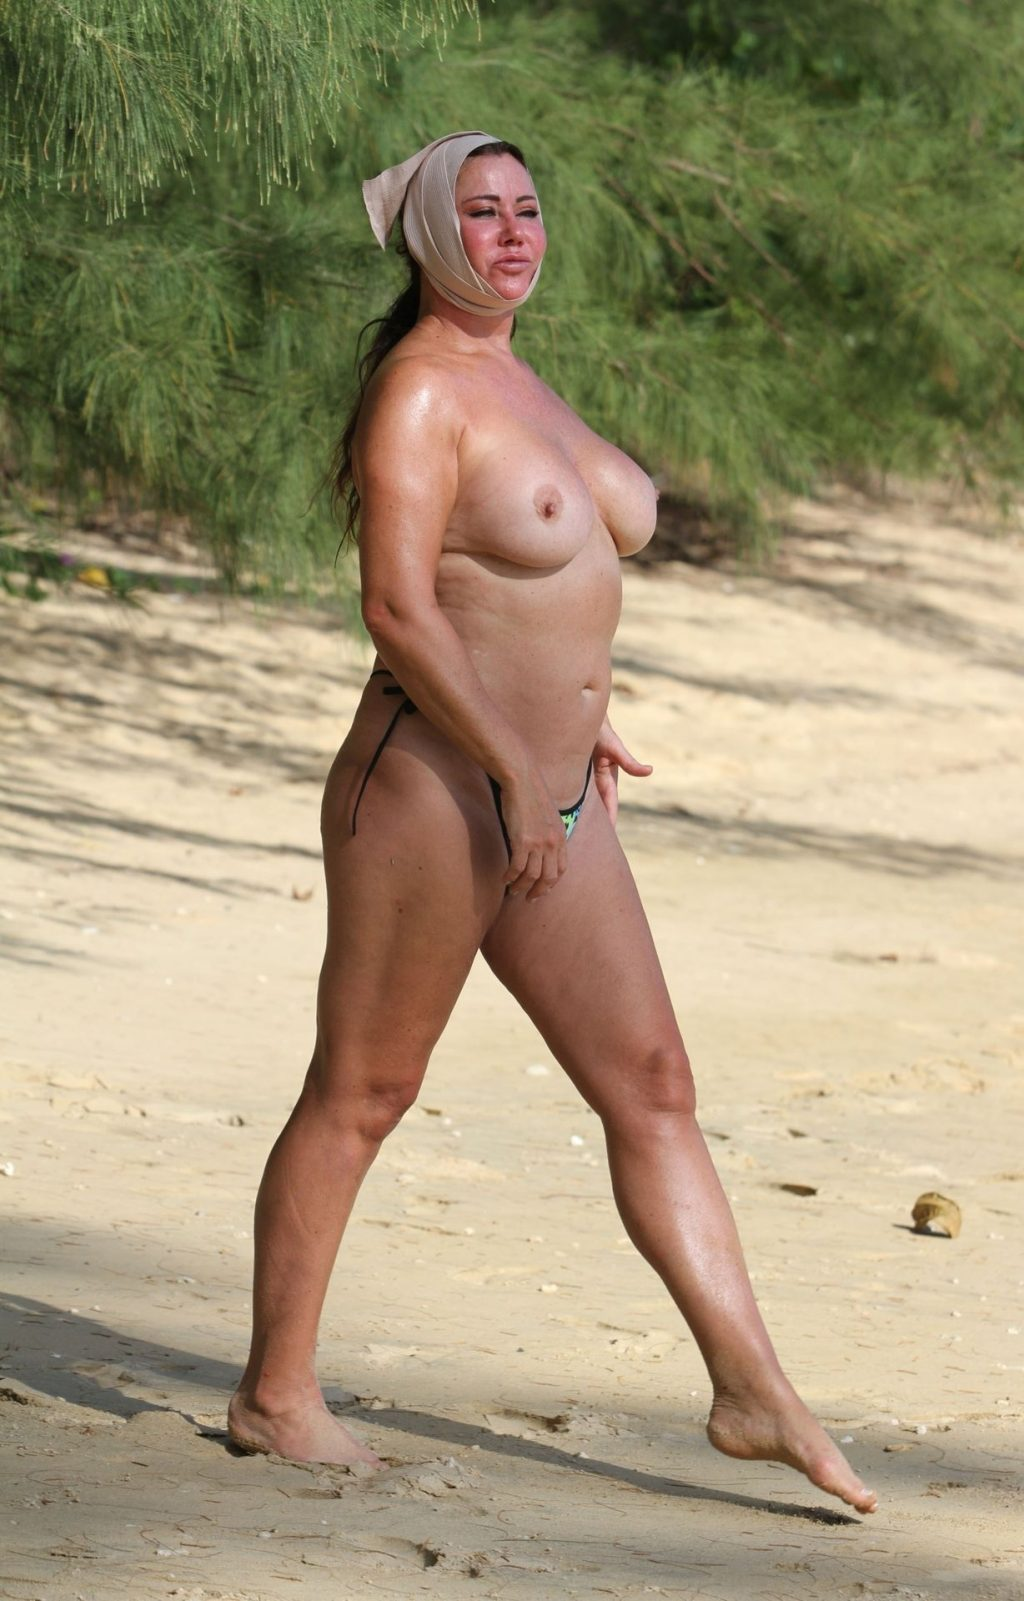 Forum on this topic: Vicky pattison nude and sexy, lisa-appleton-lauren-harries-topless-67/